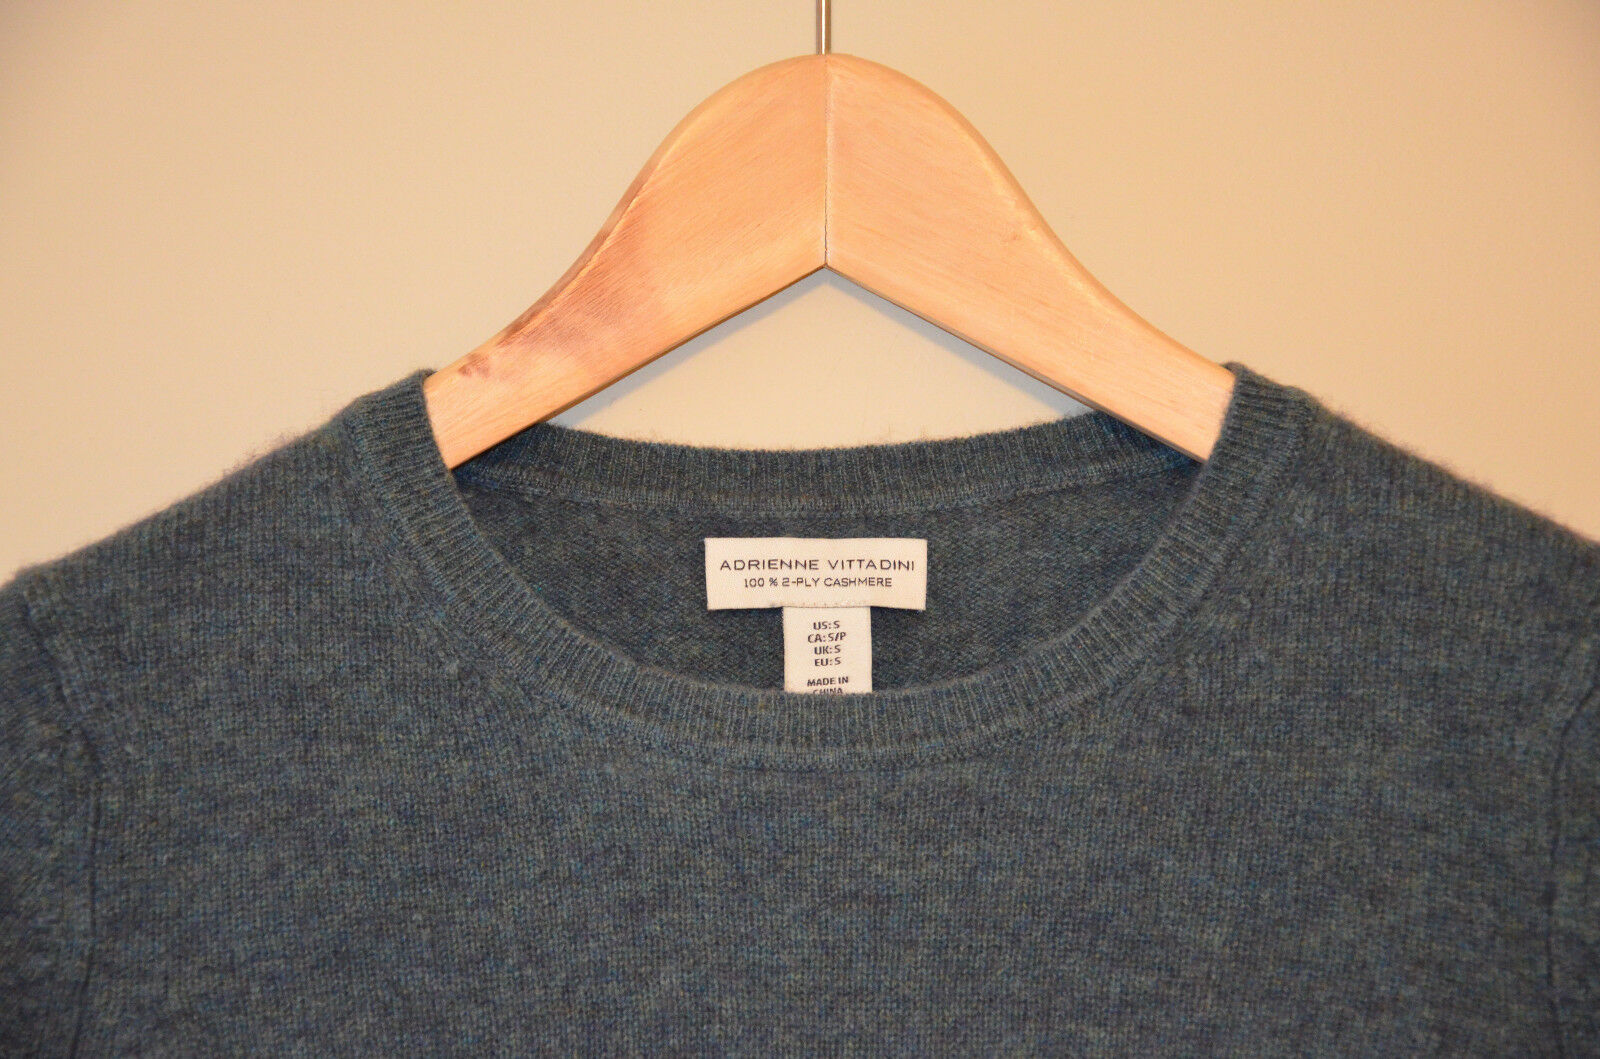 GORGEOUS Adrienne Vittadini 100% Cashmere Heathered SWEATER Women's S S S Small 0b2d17